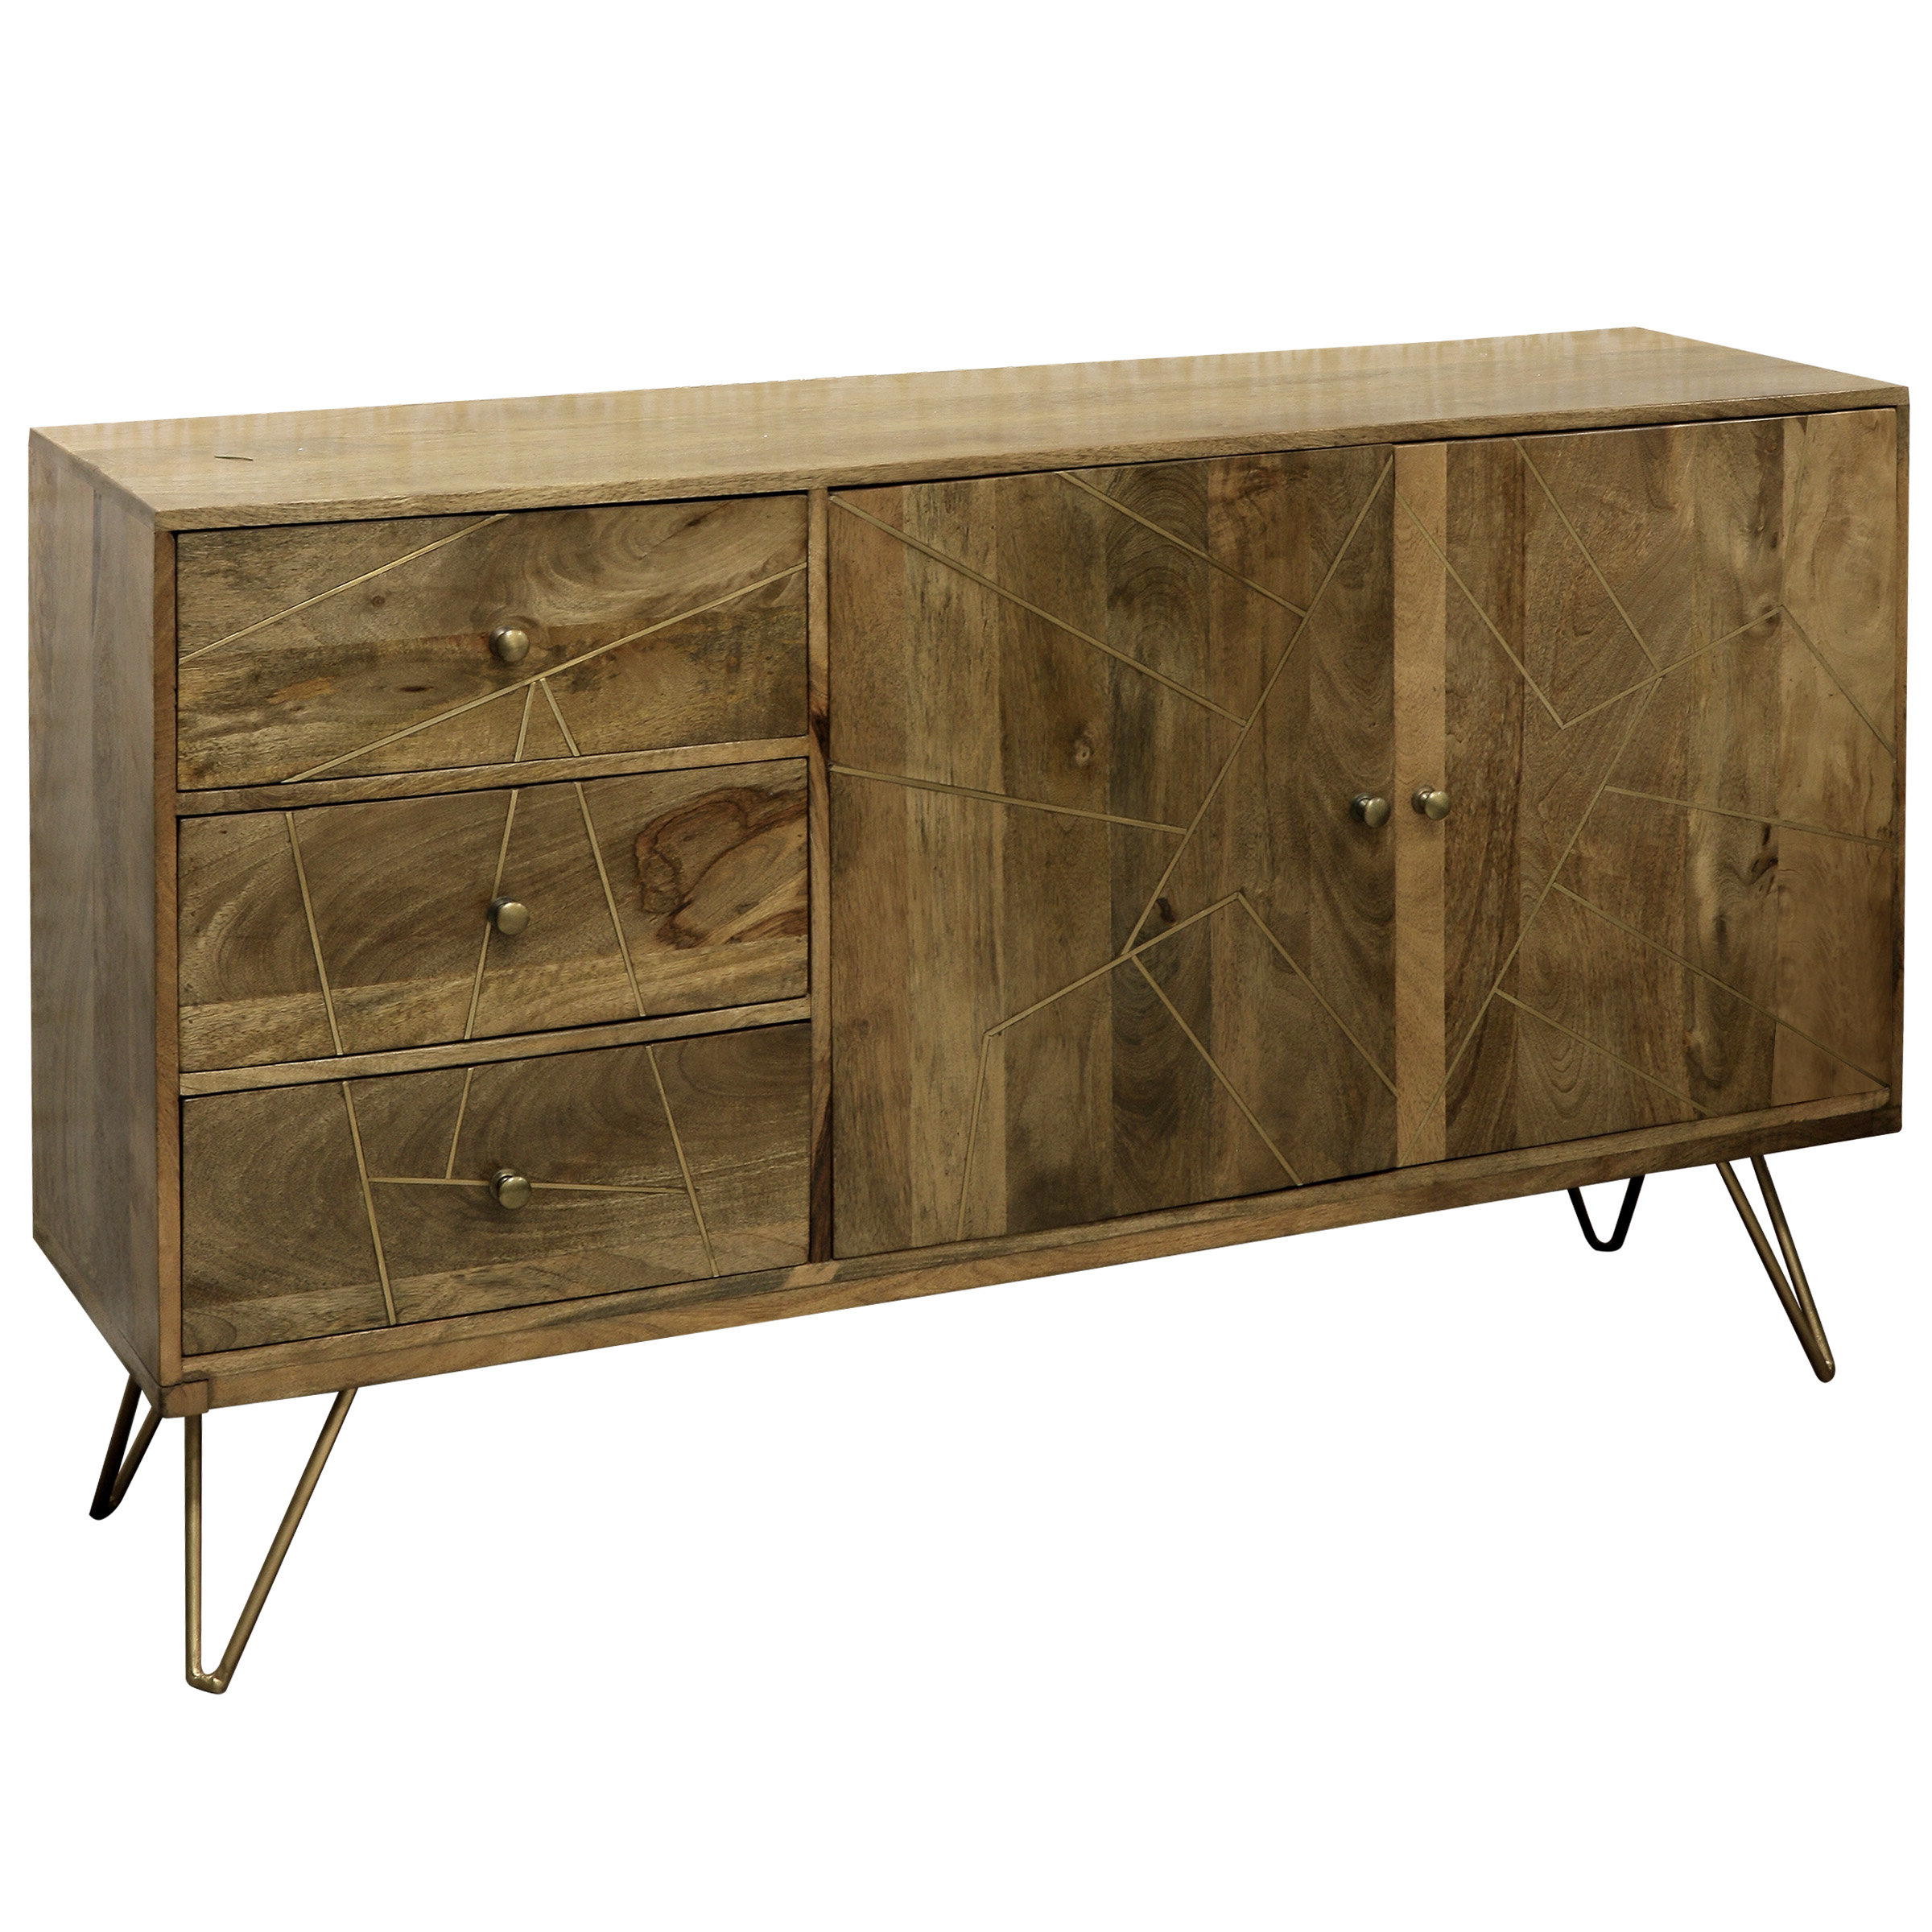 Thin Credenza You'll Love In 2019 | Wayfair Intended For Bright Angles Credenzas (View 7 of 20)